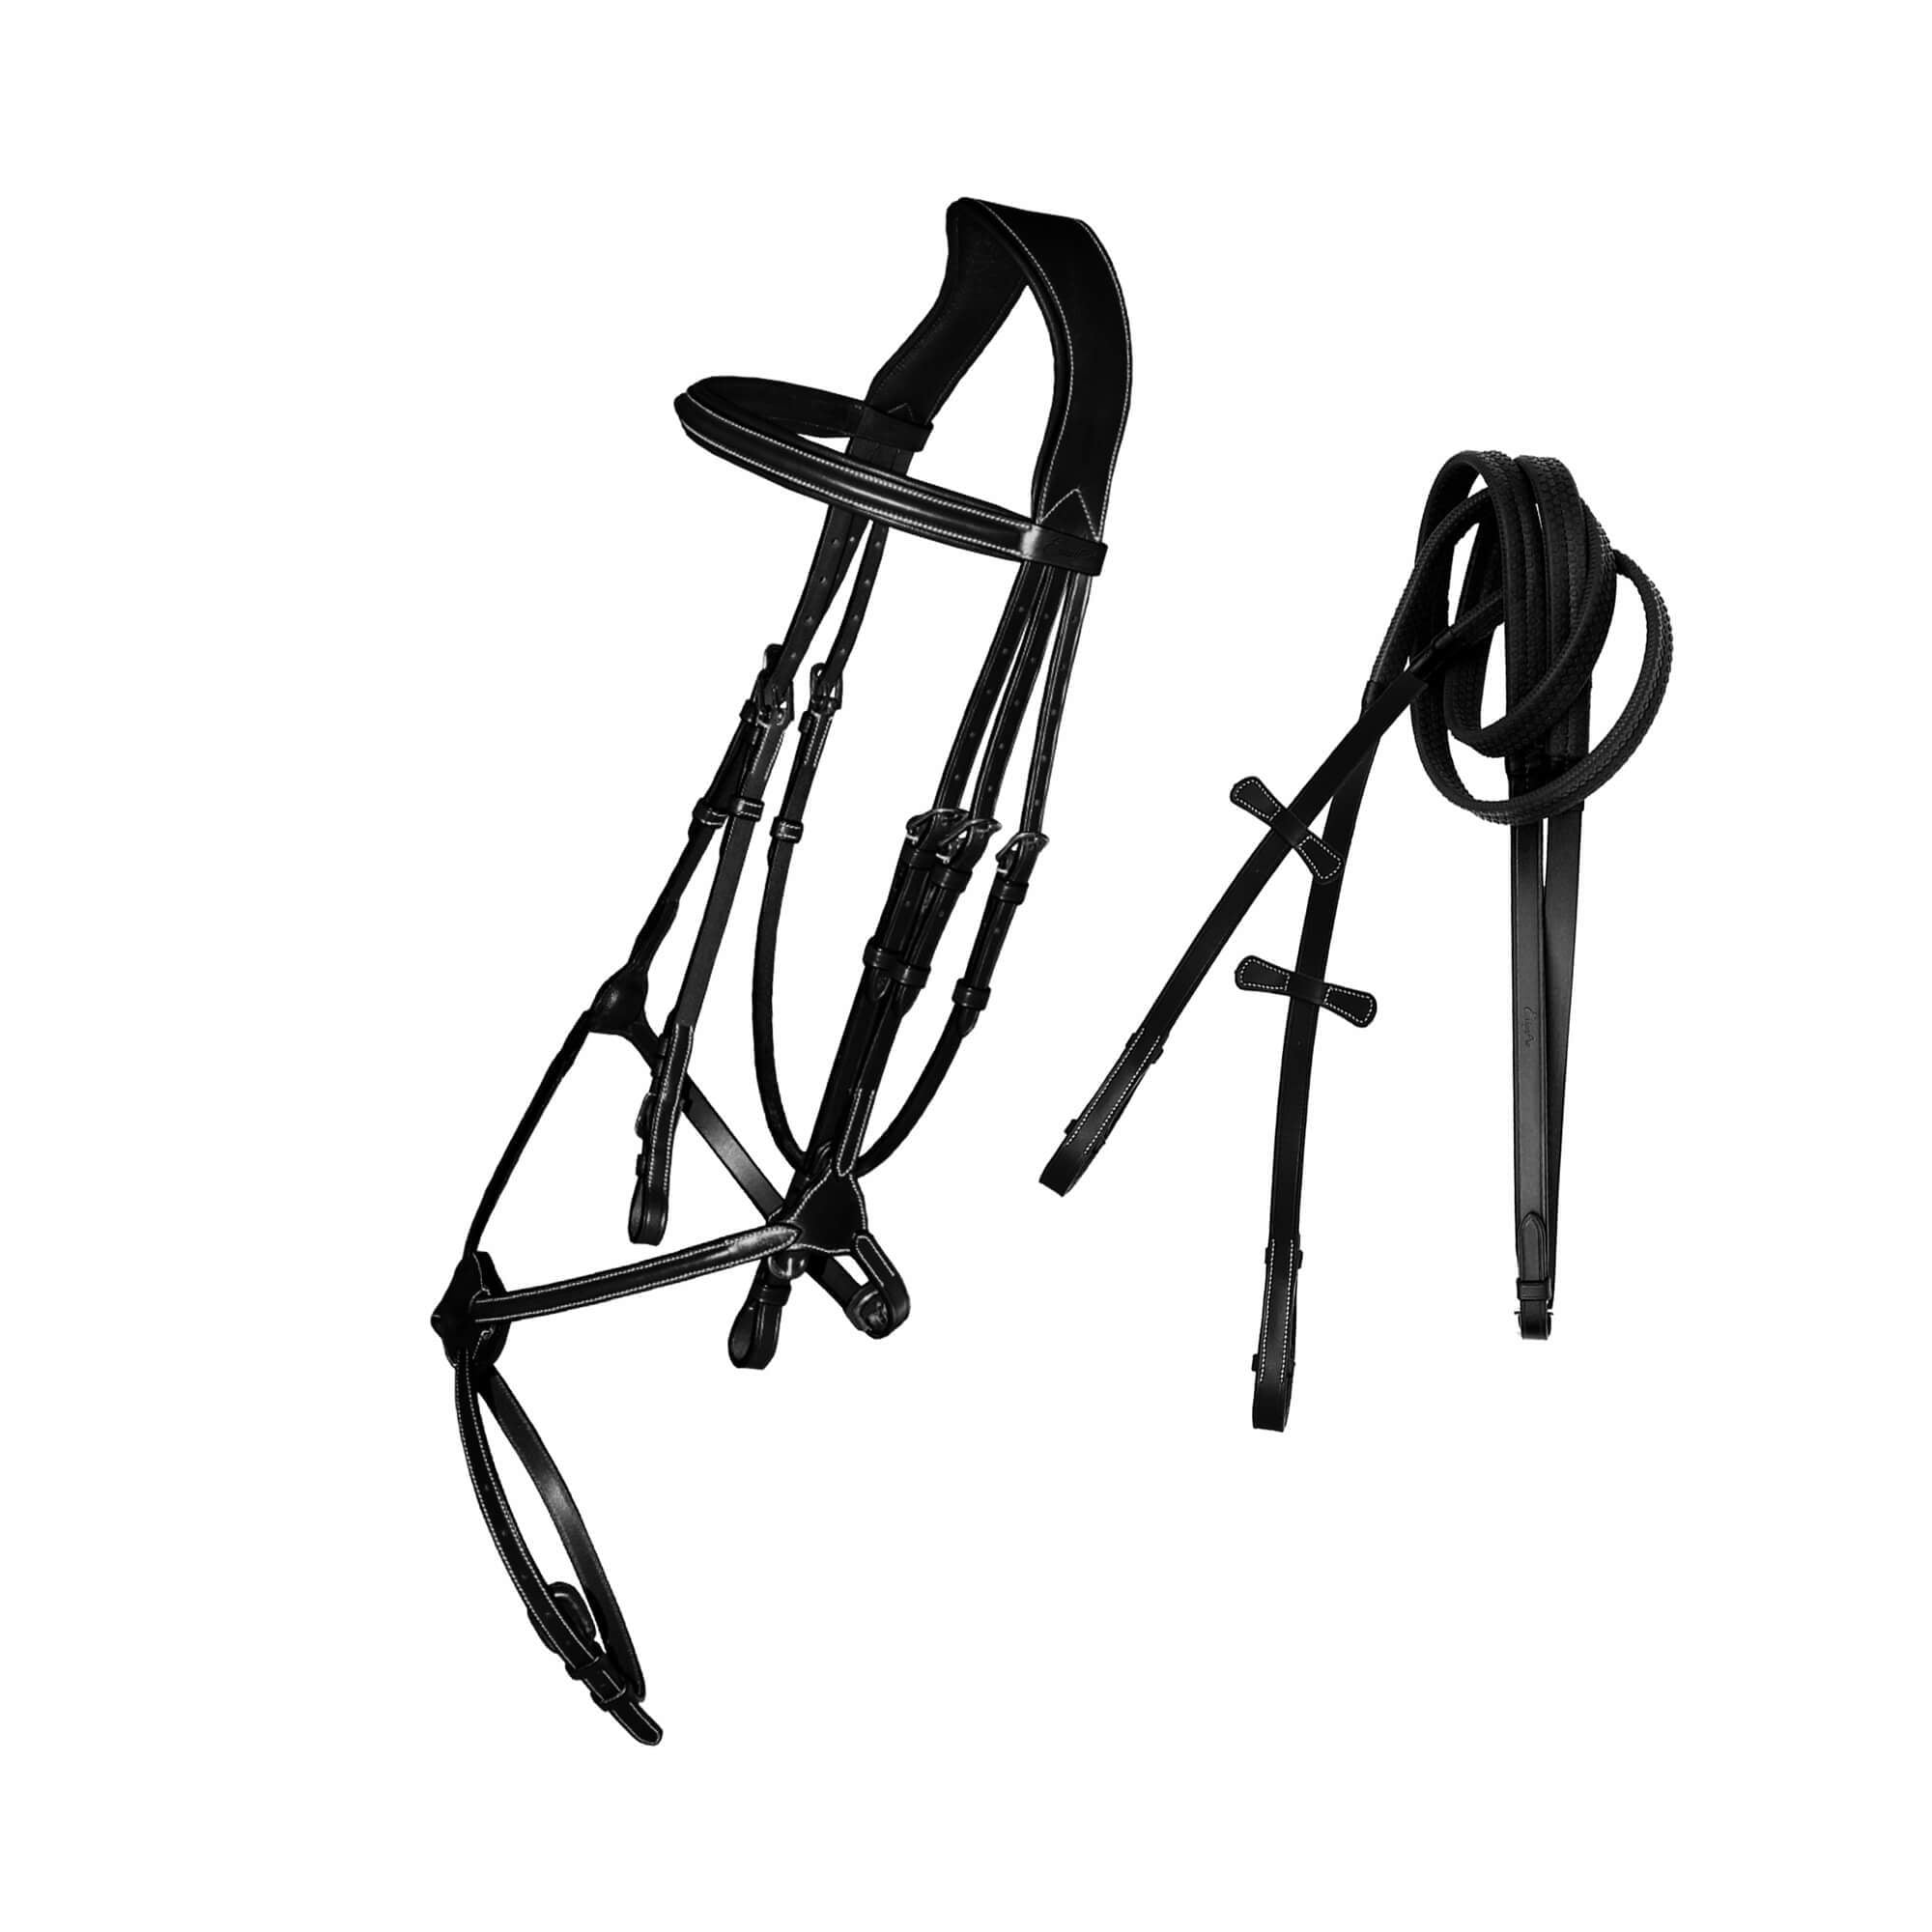 English Bridles-ExionPro Padded Joint Figure 8 Bridle with Rubber Reins-Bridles and Reins